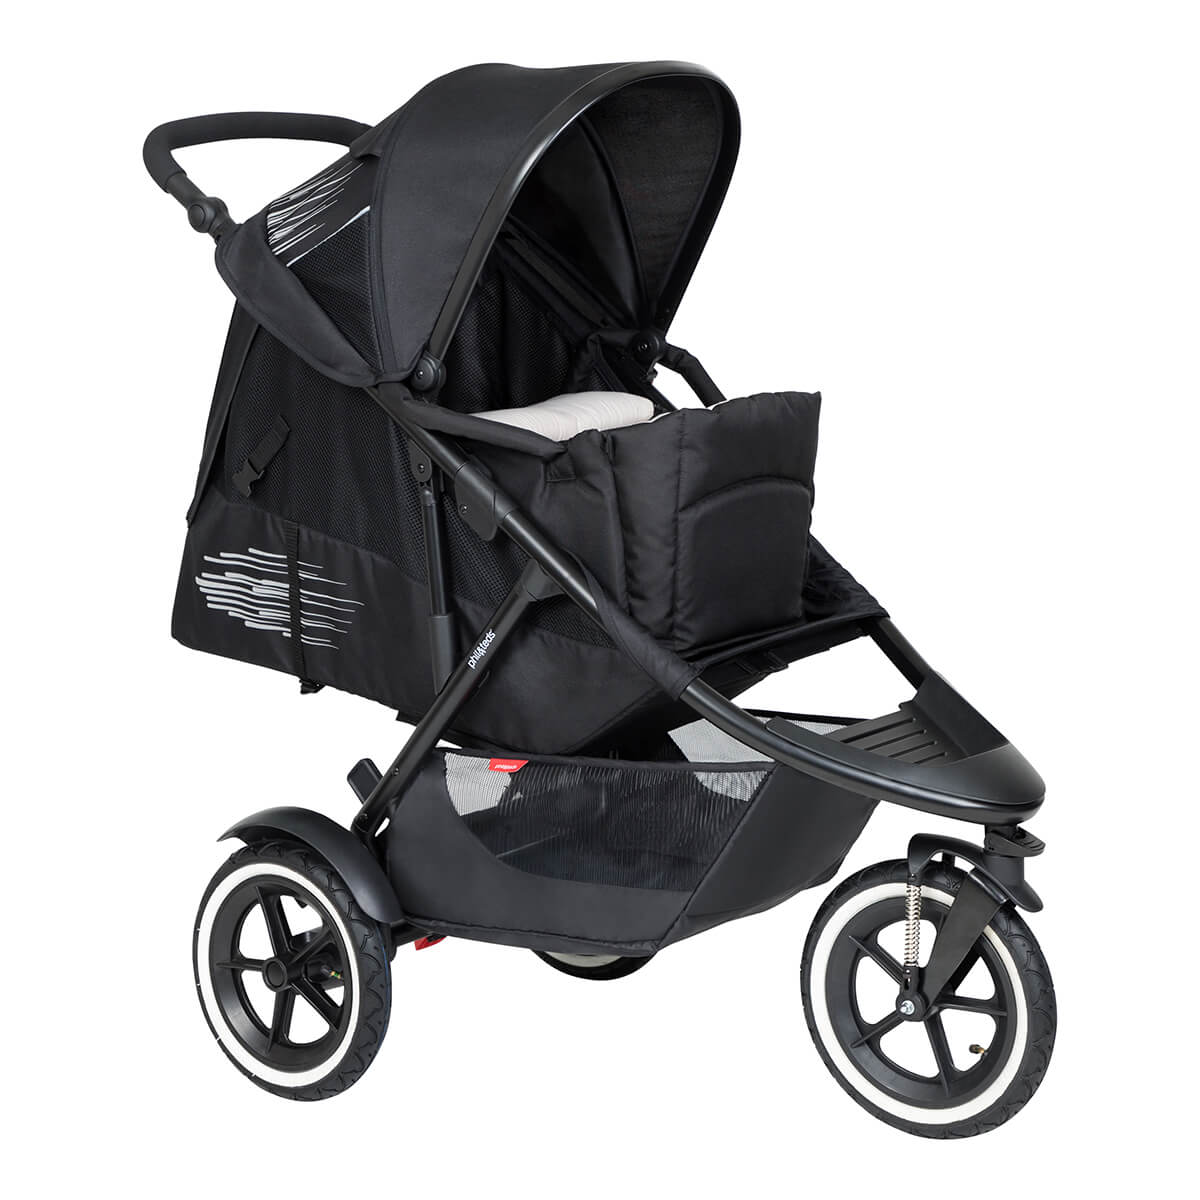 https://cdn.accentuate.io/4509527539800/19272668119128/philteds-sport-buggy-with-cocoon-full-recline-v1626484358926.jpg?1200x1200